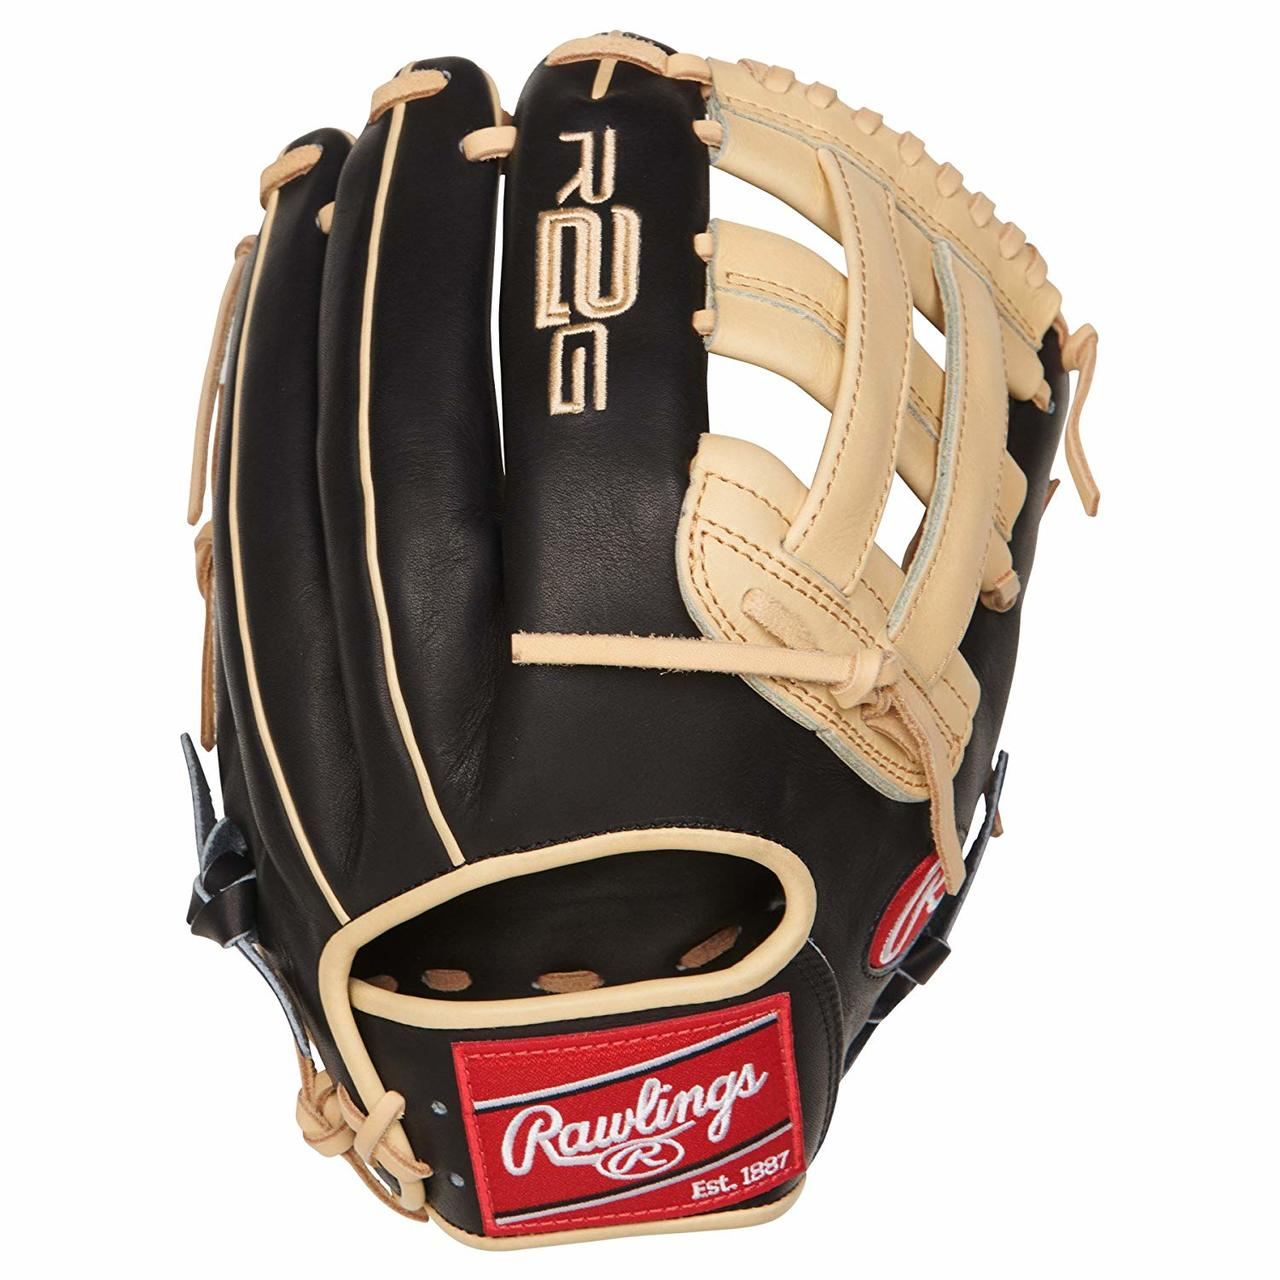 rawlings-heart-of-the-hide-r2g-12-25-inch-pror207-6bc-baseball-glove-right-hand-throw PROR207-6BC-RightHandThrow Rawlings 083321526596 12.25 Inch Model Pro H Web Narrow Fit Pattern Ideal For